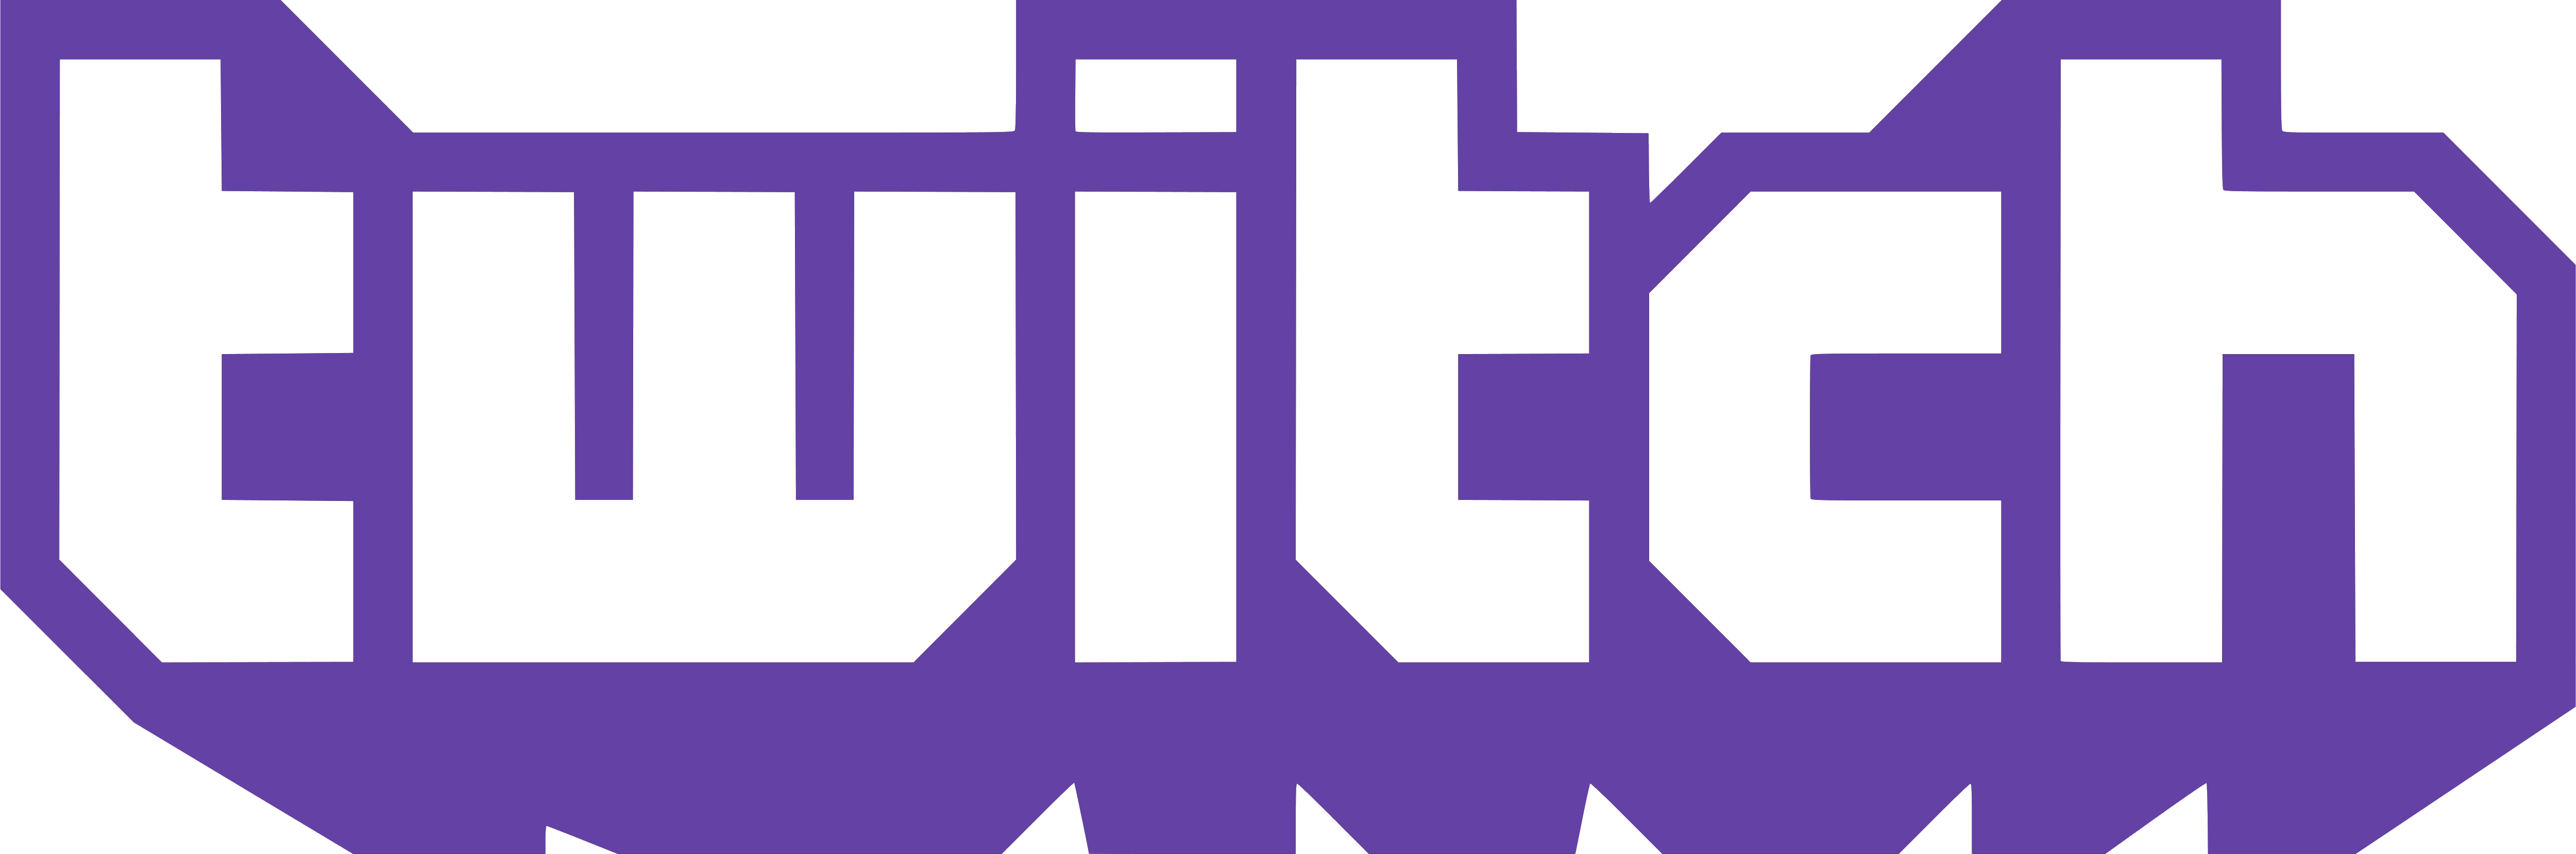 Twitch u2013 Logos Download